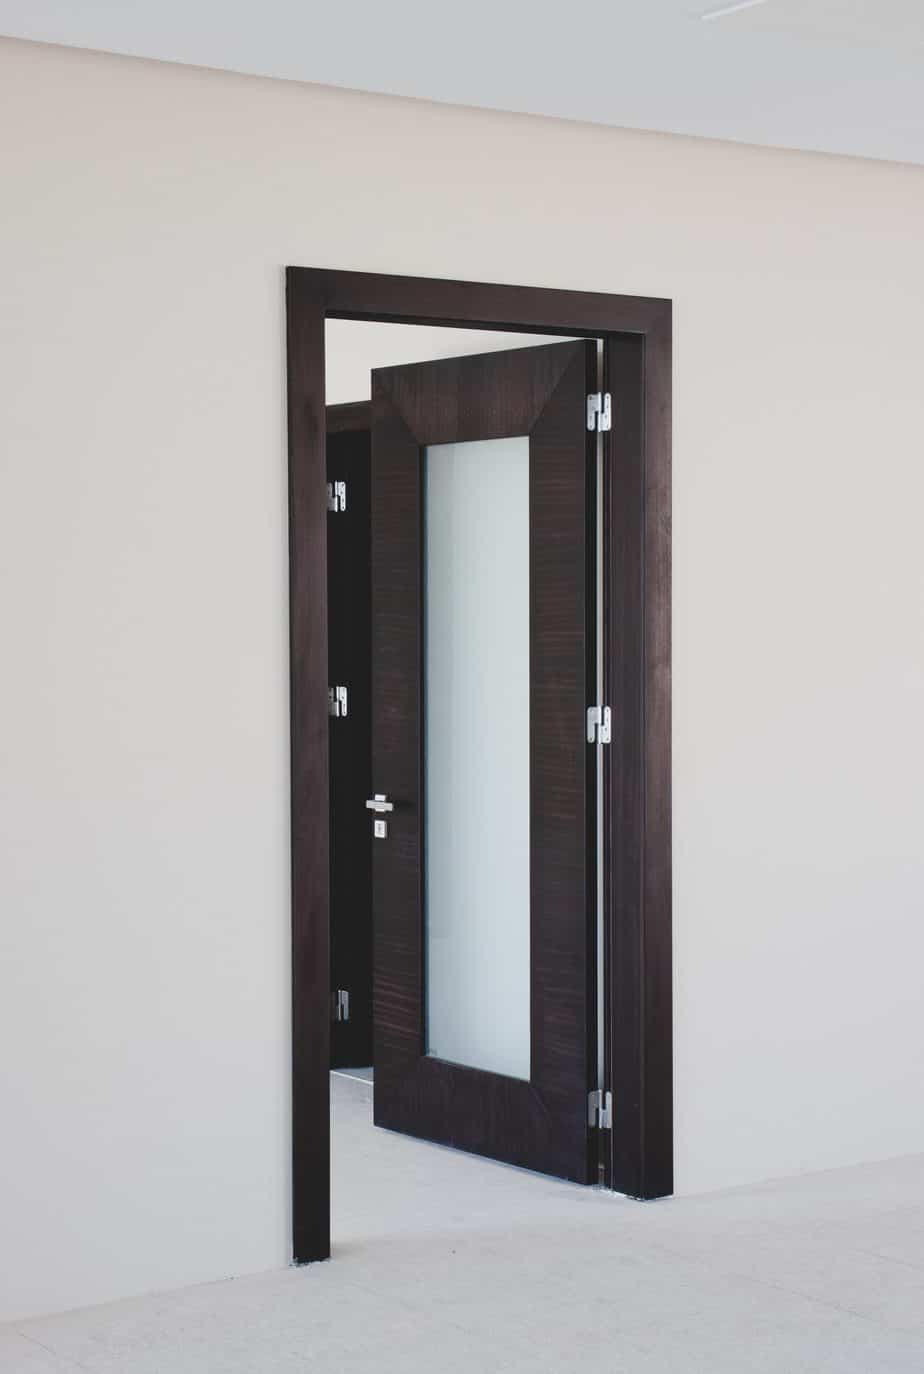 Tips to Keep Your New Internal Doors Looking Great